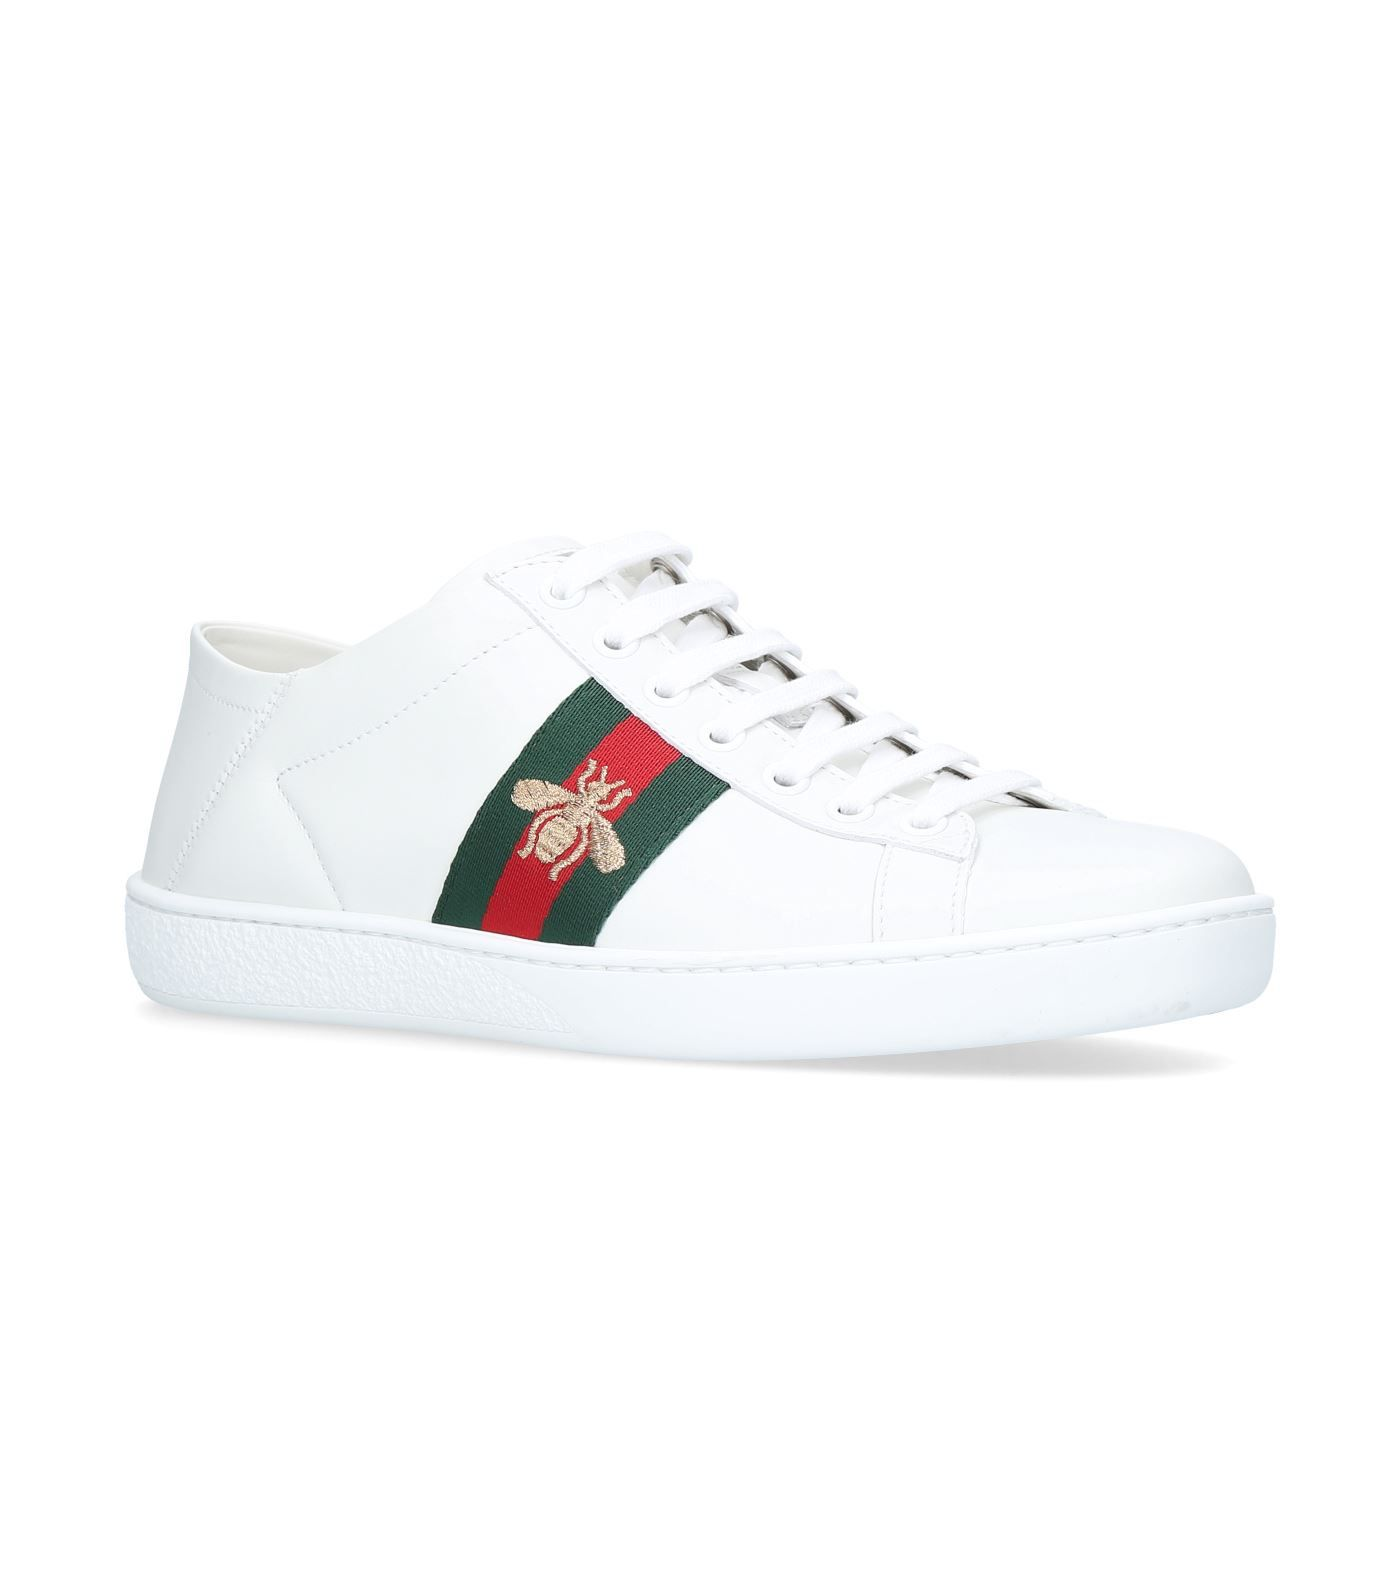 1289810ee Gucci Embroidered Bee Ace Sneakers #AD , #Ad, #Embroidered, #Gucci, #Bee, # Sneakers, #Ace